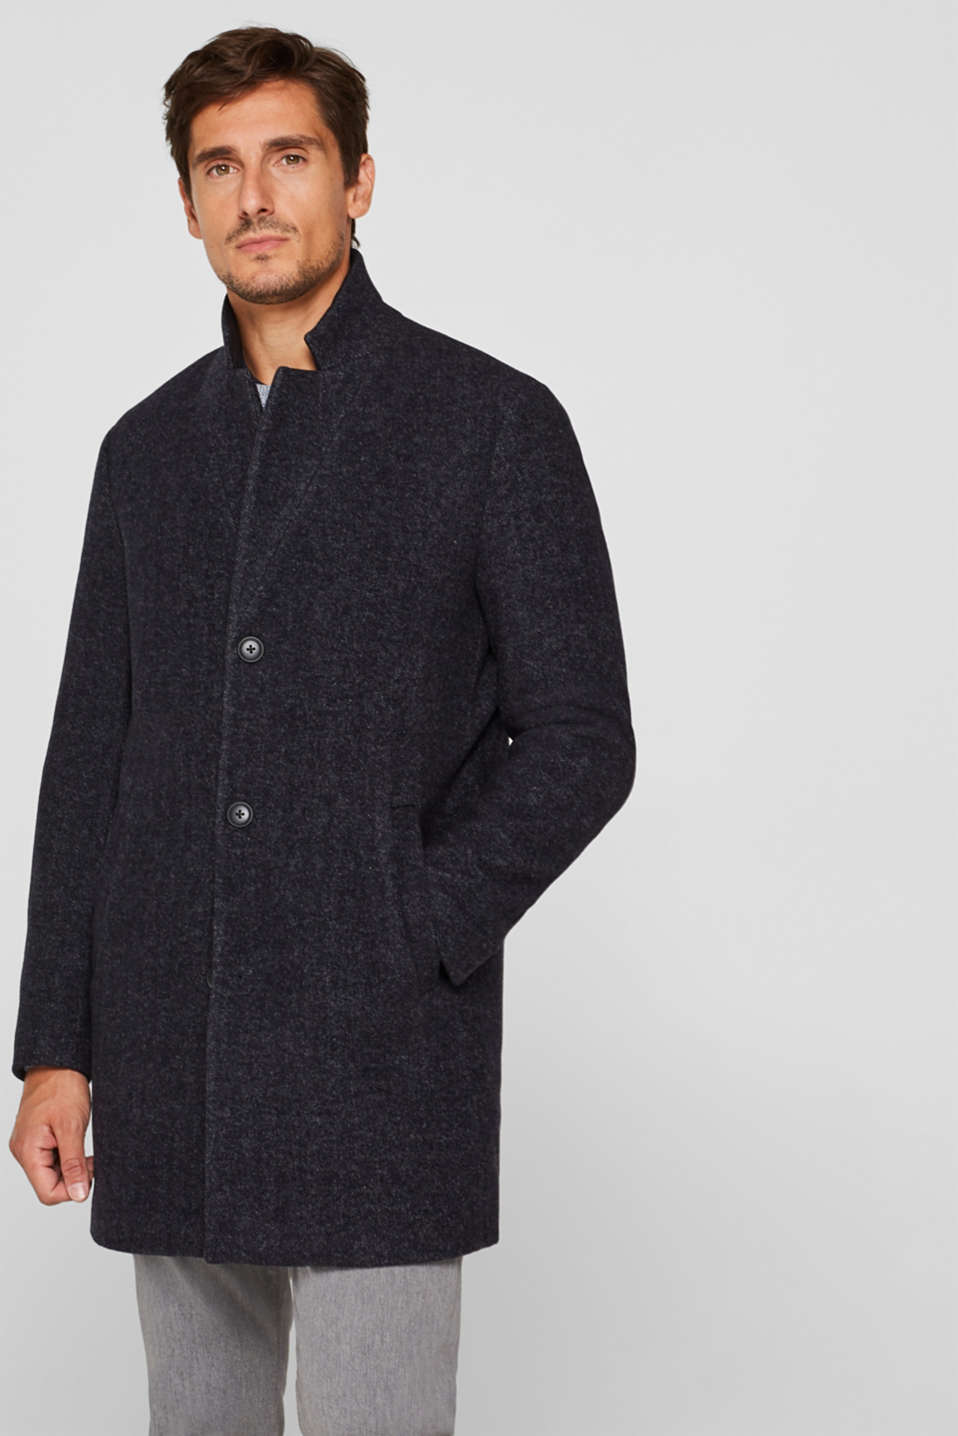 Wool blend: Coat with a herringbone pattern, ANTHRACITE, detail image number 0